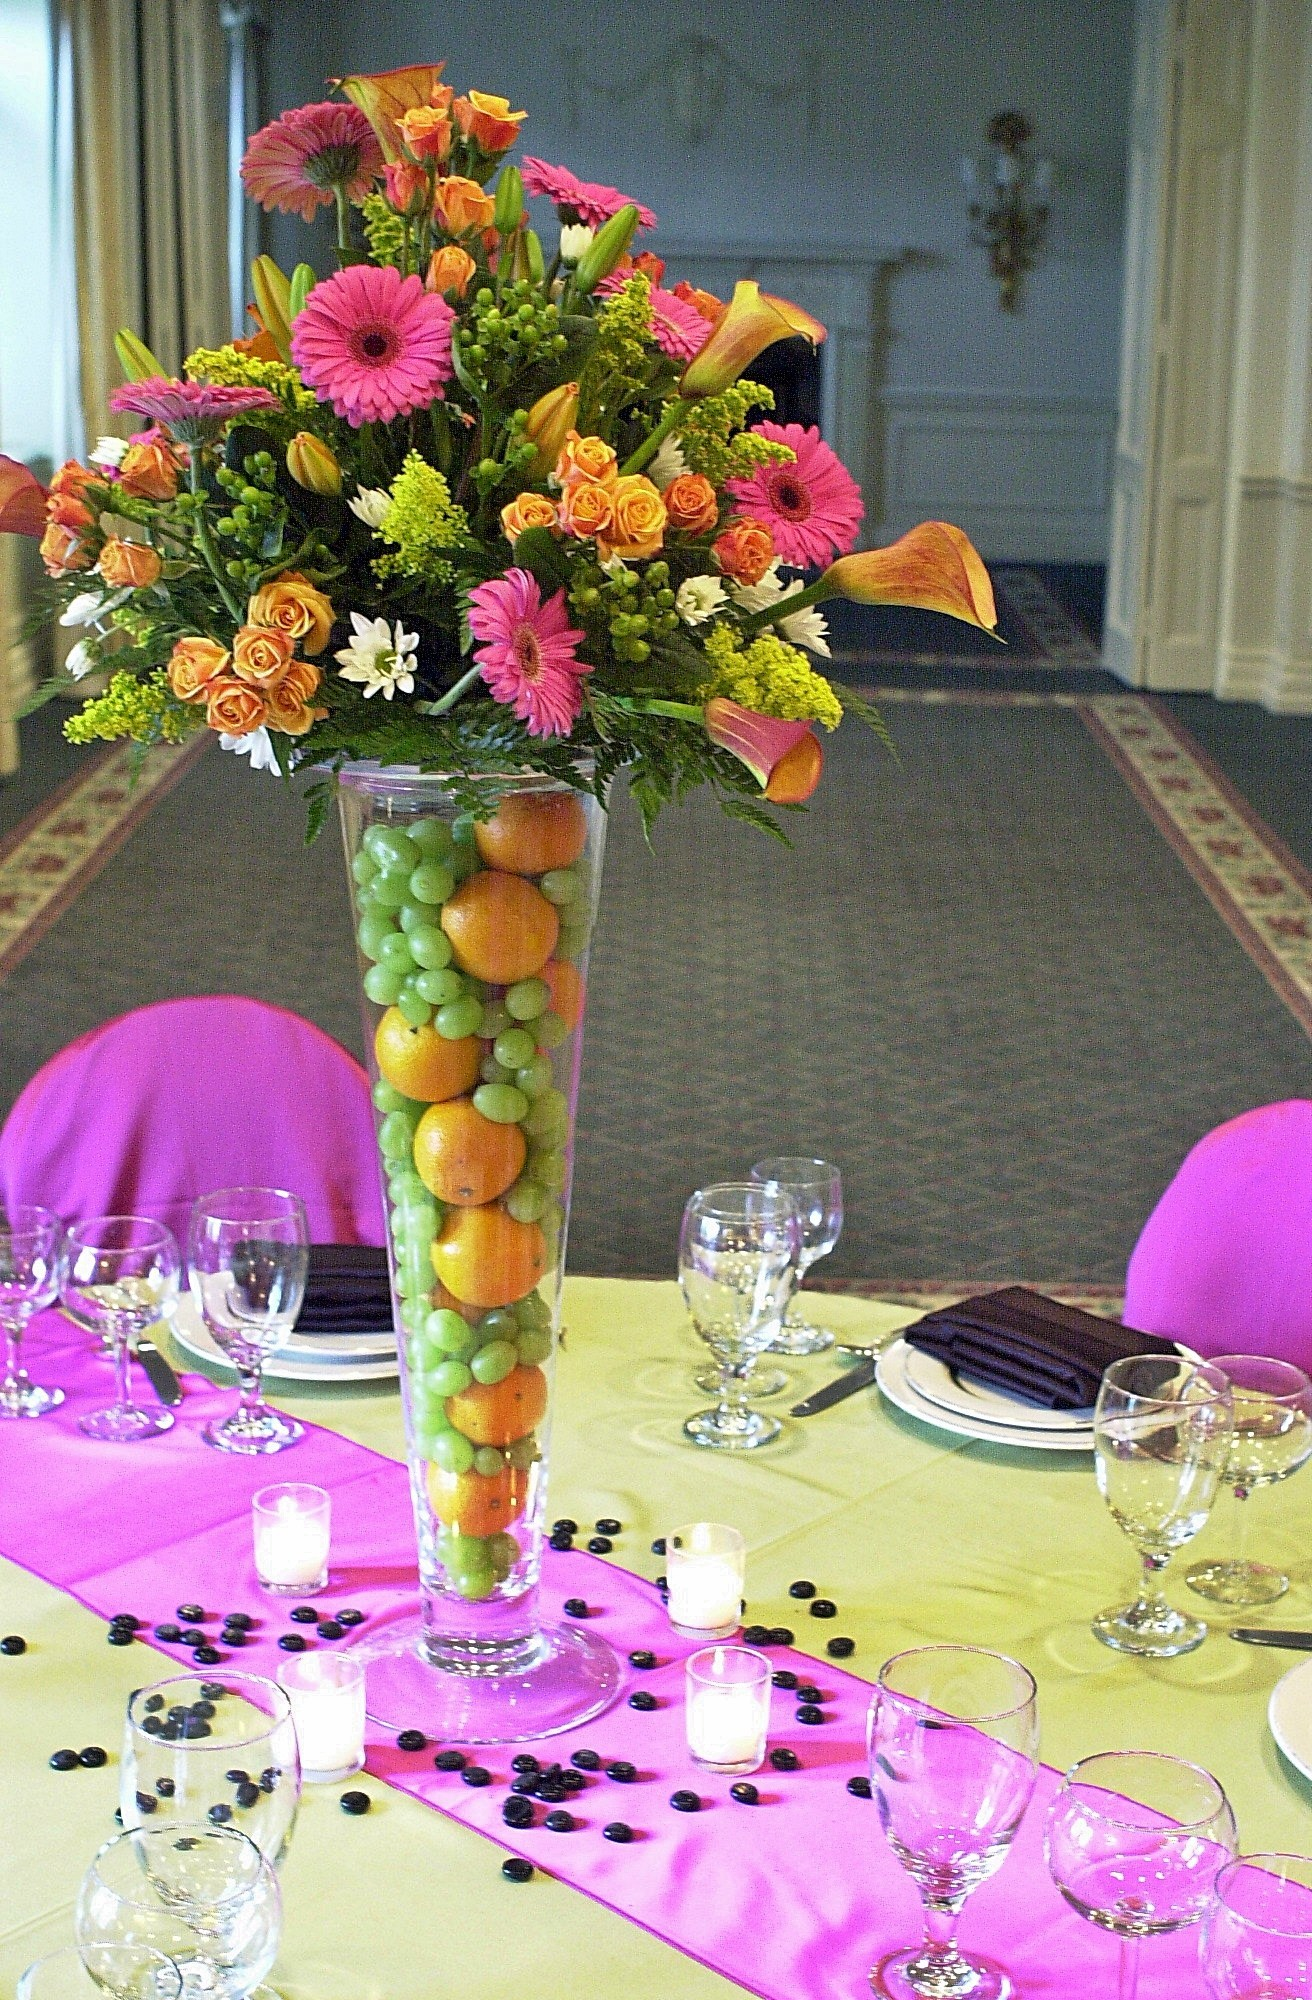 Flowers & Decor, Flowers, Fruit, And, Essential details